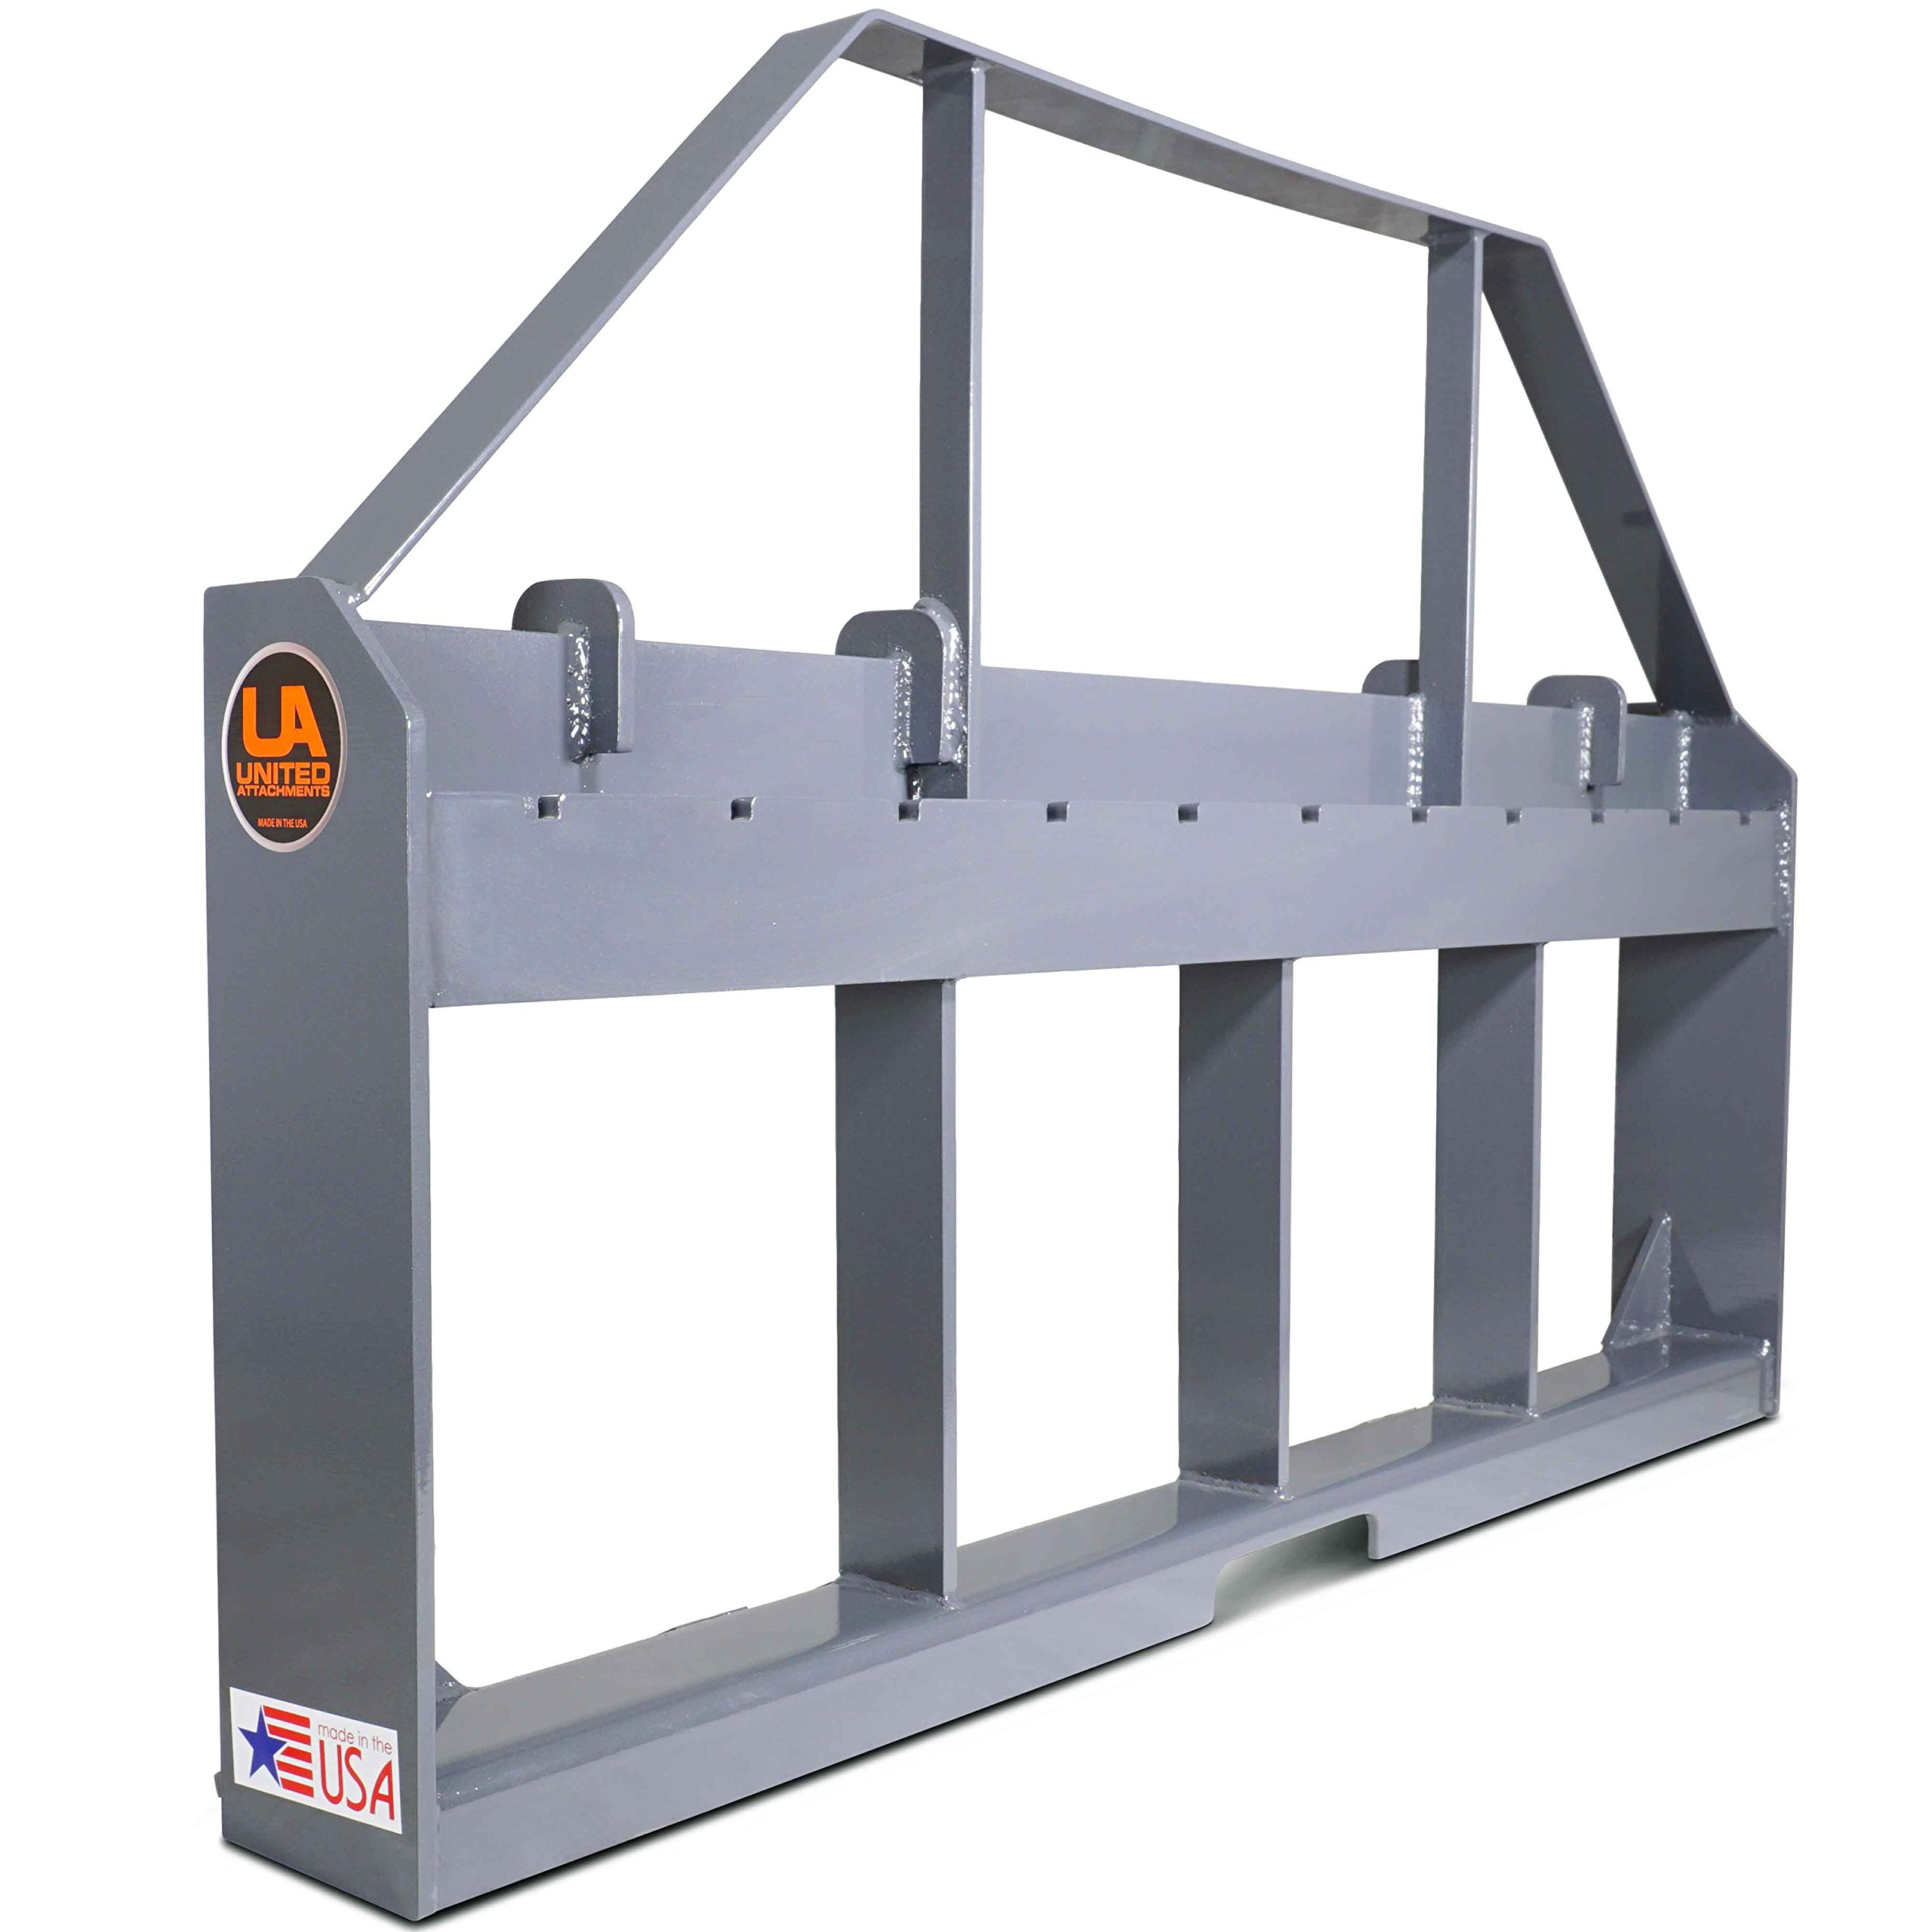 UA Made in the USA Skid Steer Pallet Fork Frame by Titan Attachments